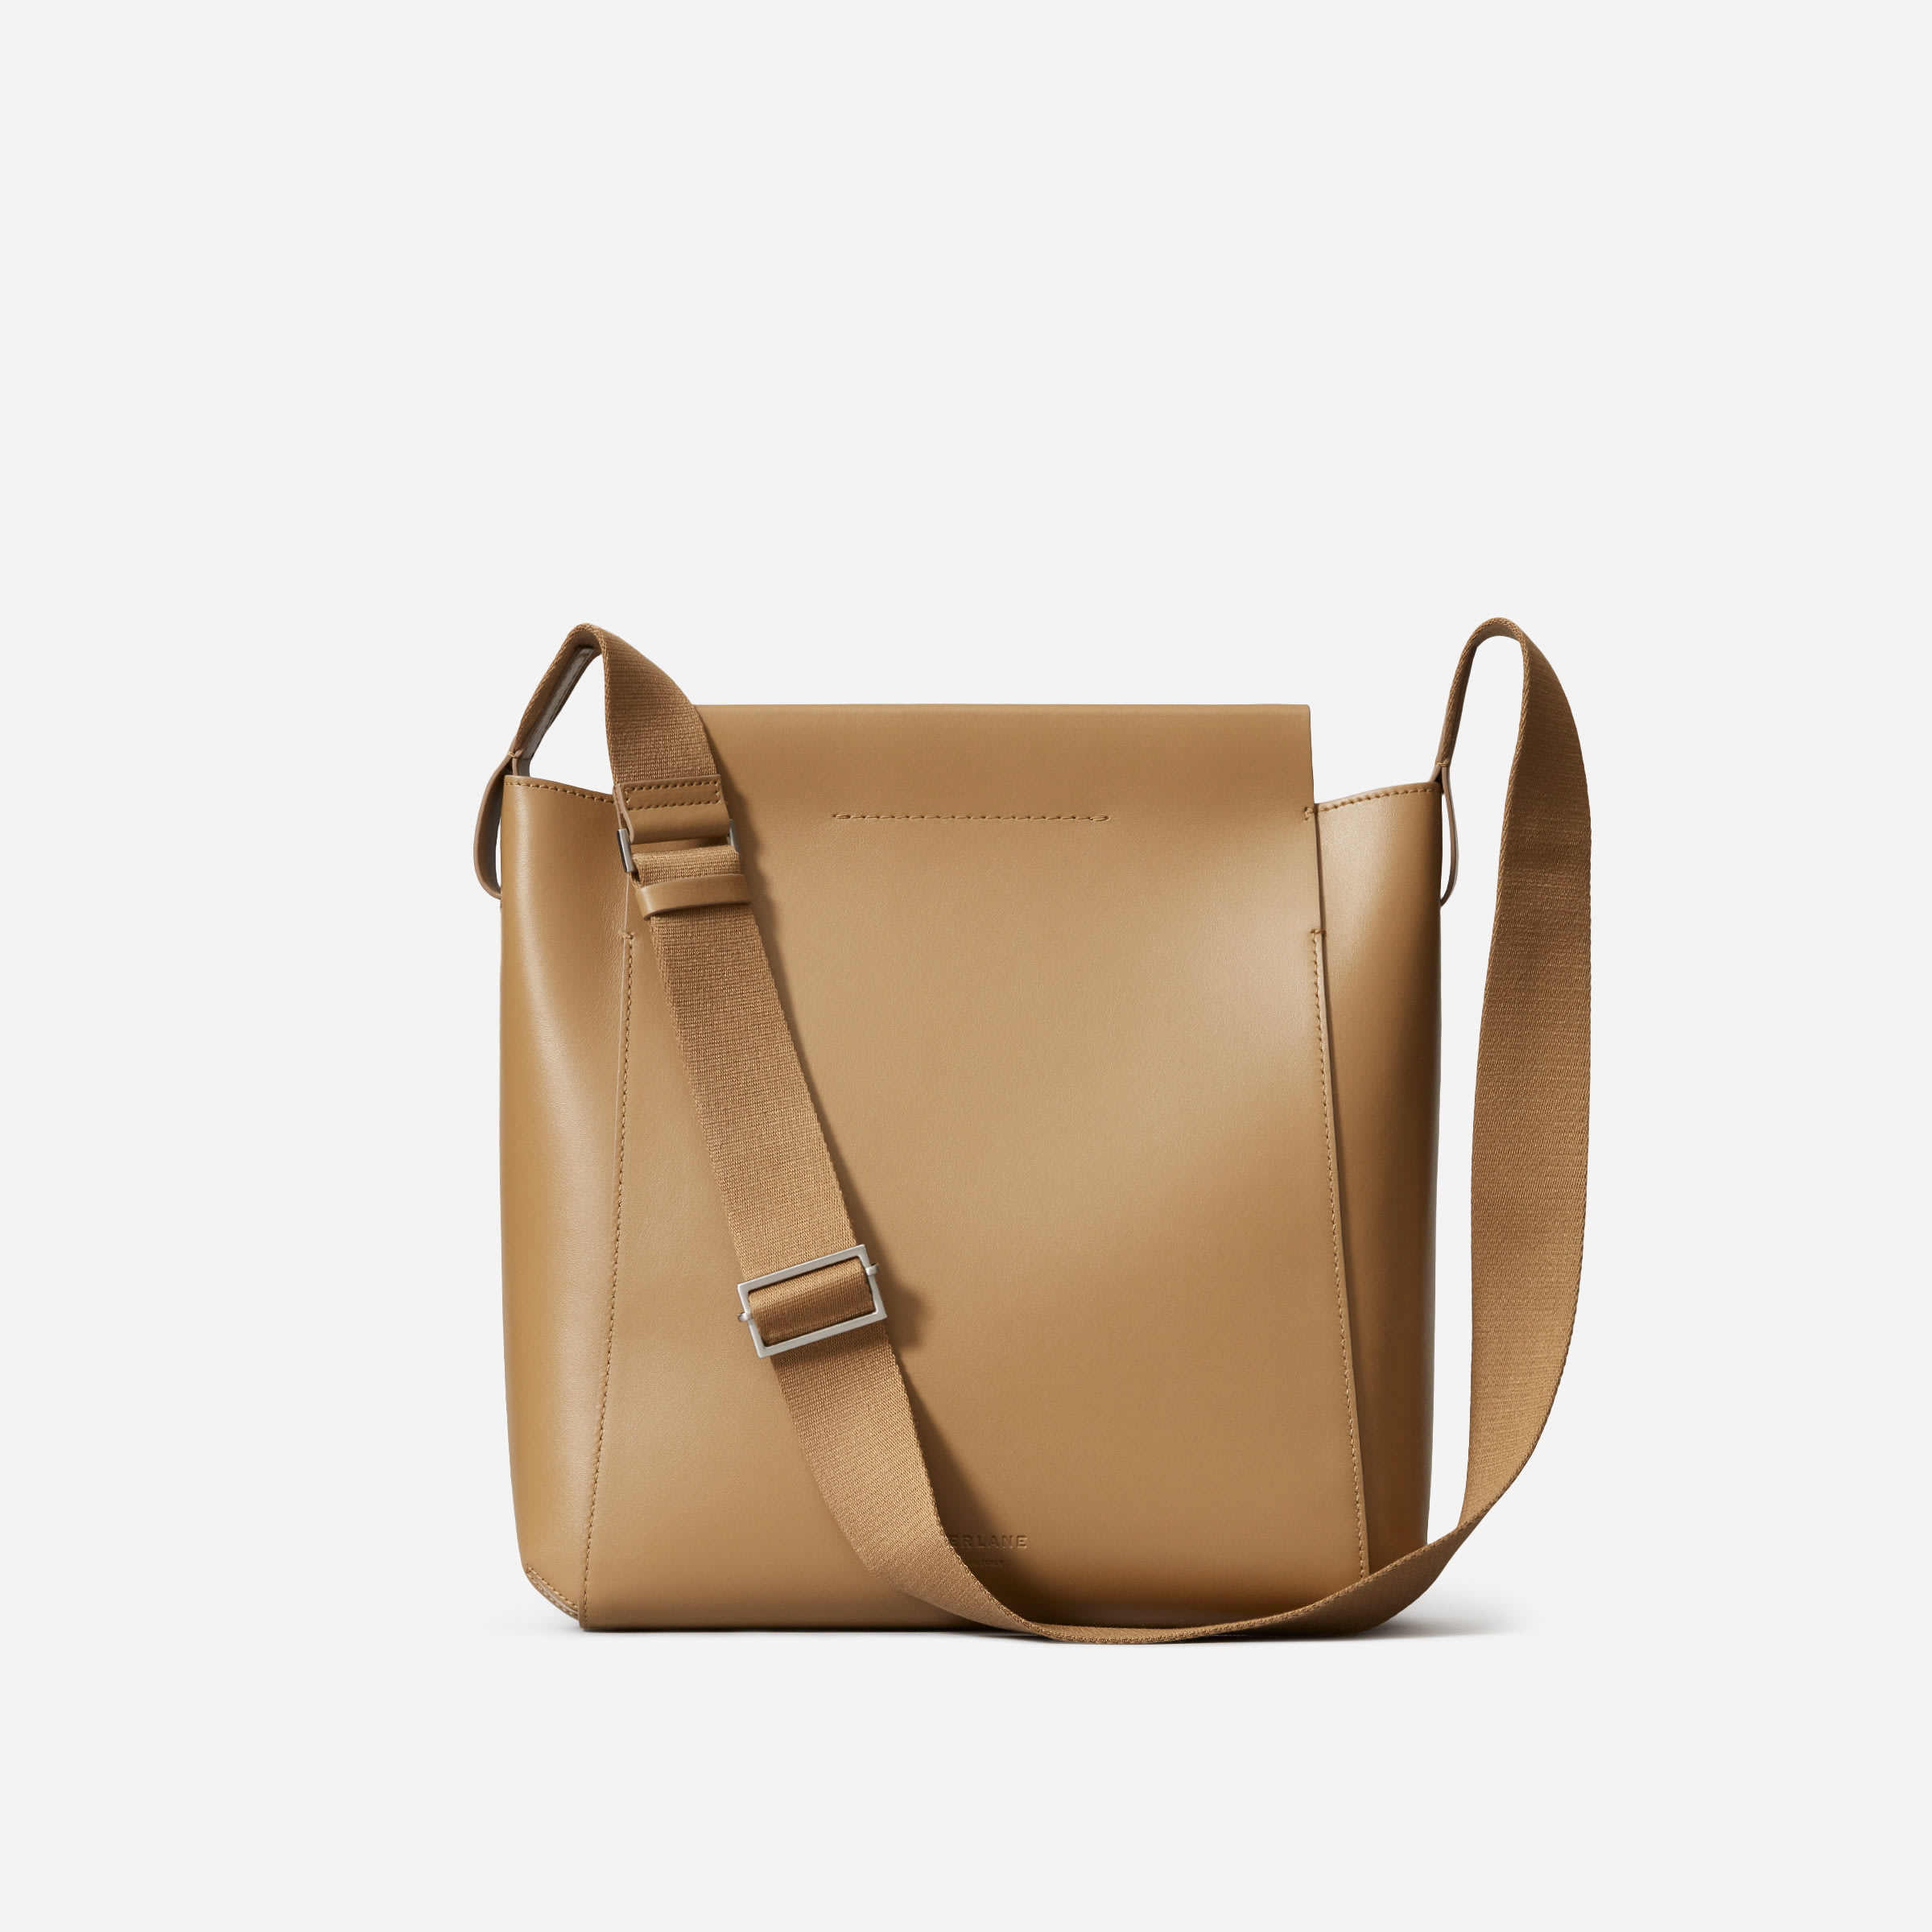 The Form Bag - $235